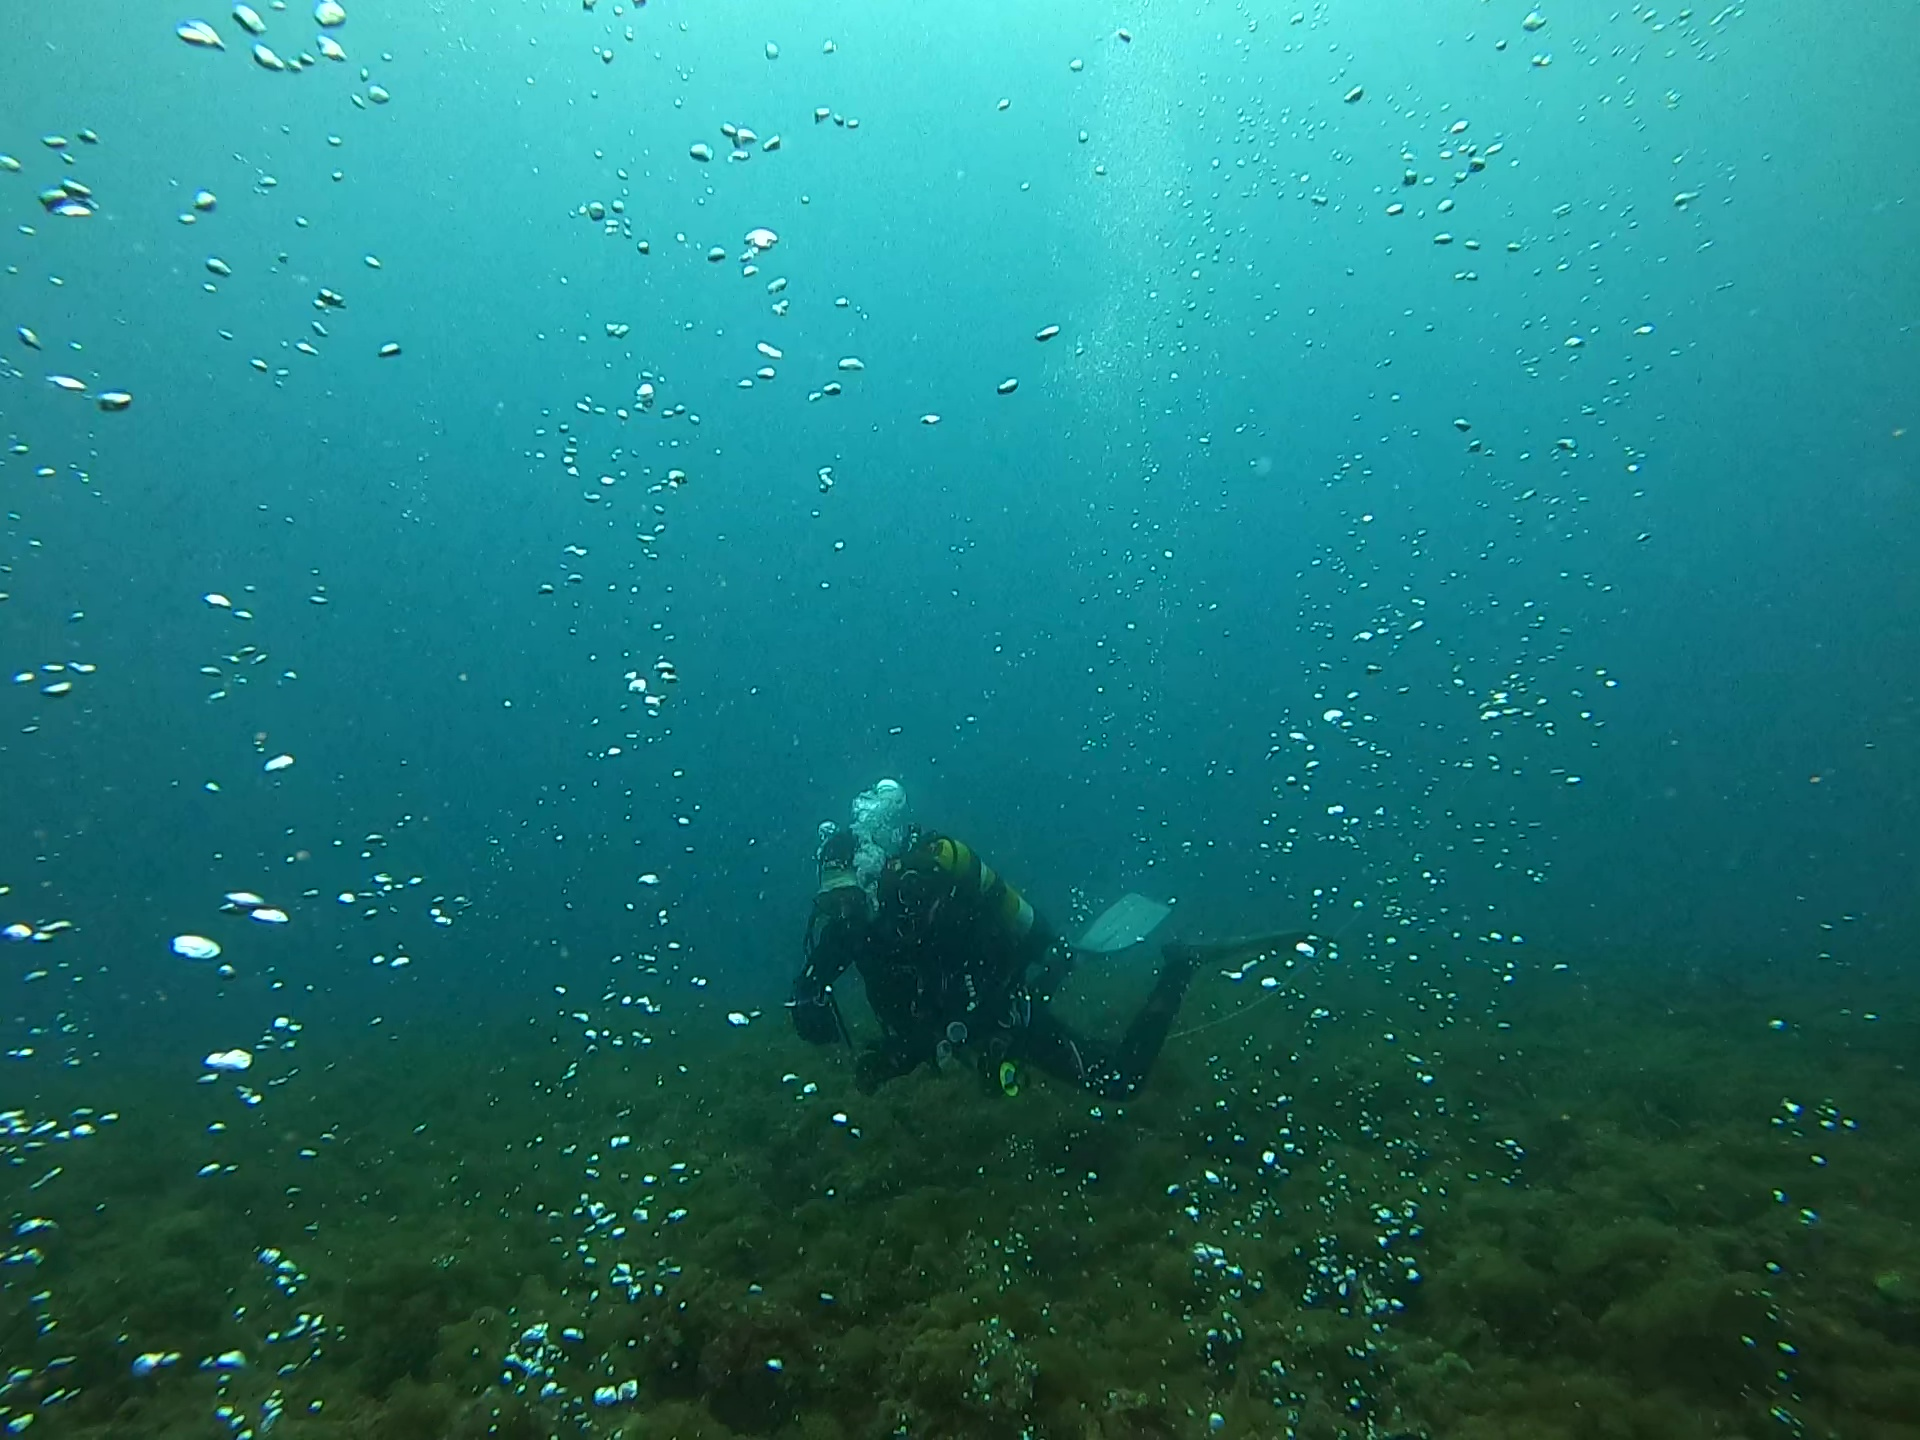 immersione in grotta - cave diving - bolle d'aria - air bubbles - intotheblue.it